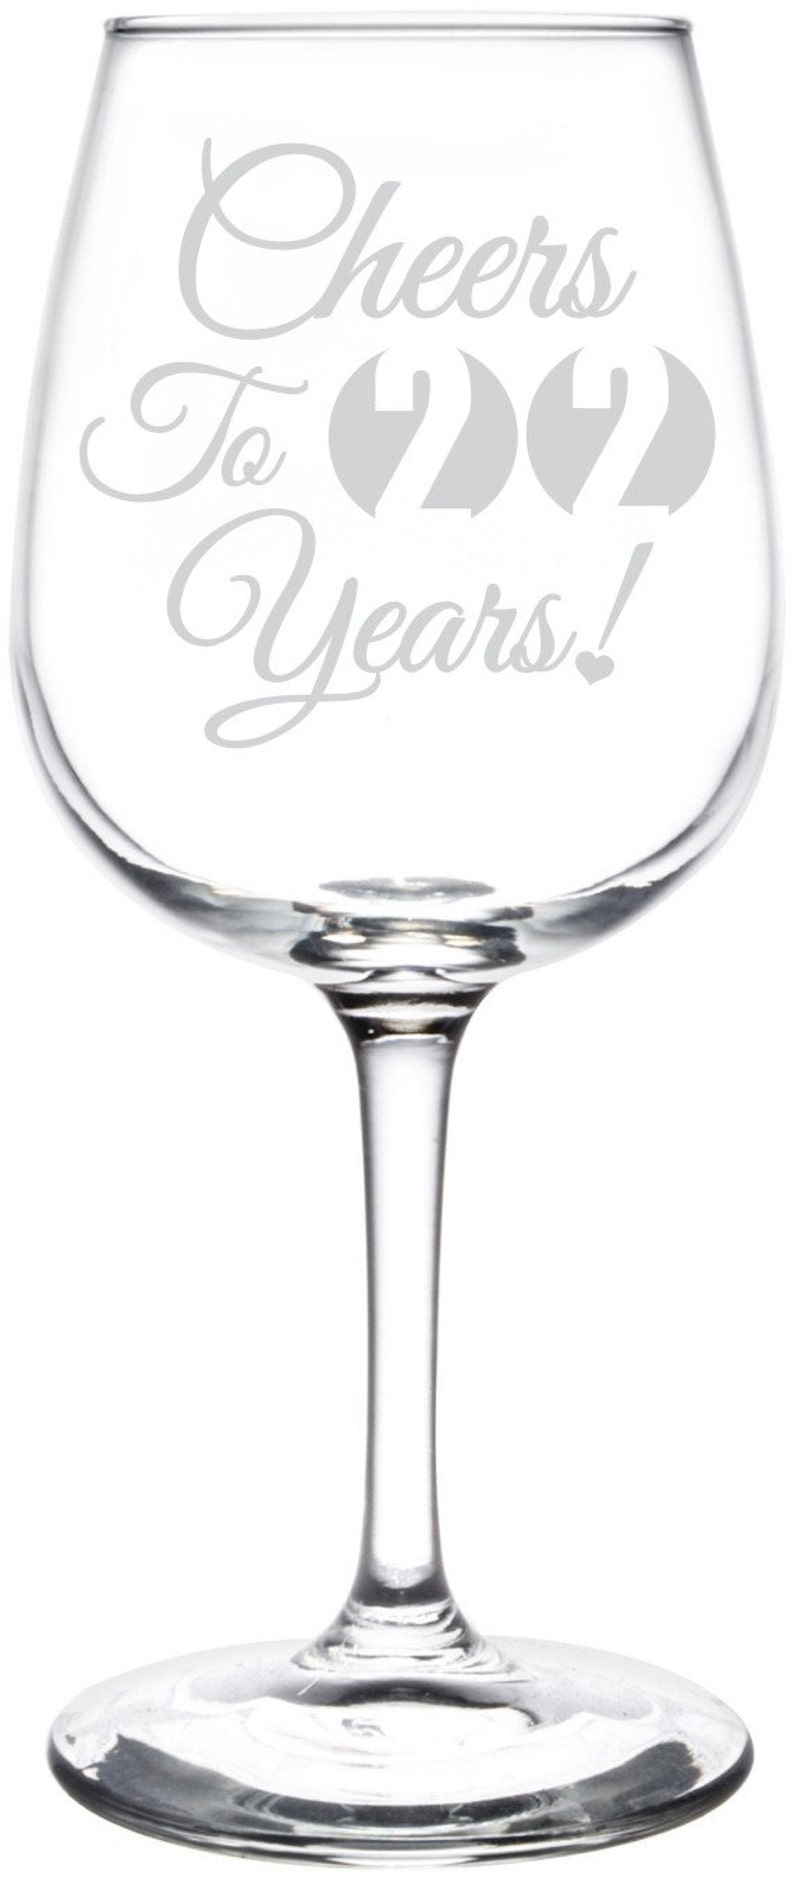 Libbey Wine Taster Glass Special Occasions /& Celebration Gift Inspired Anniversary 25th Graduation Cheers To Years Birthday 21st